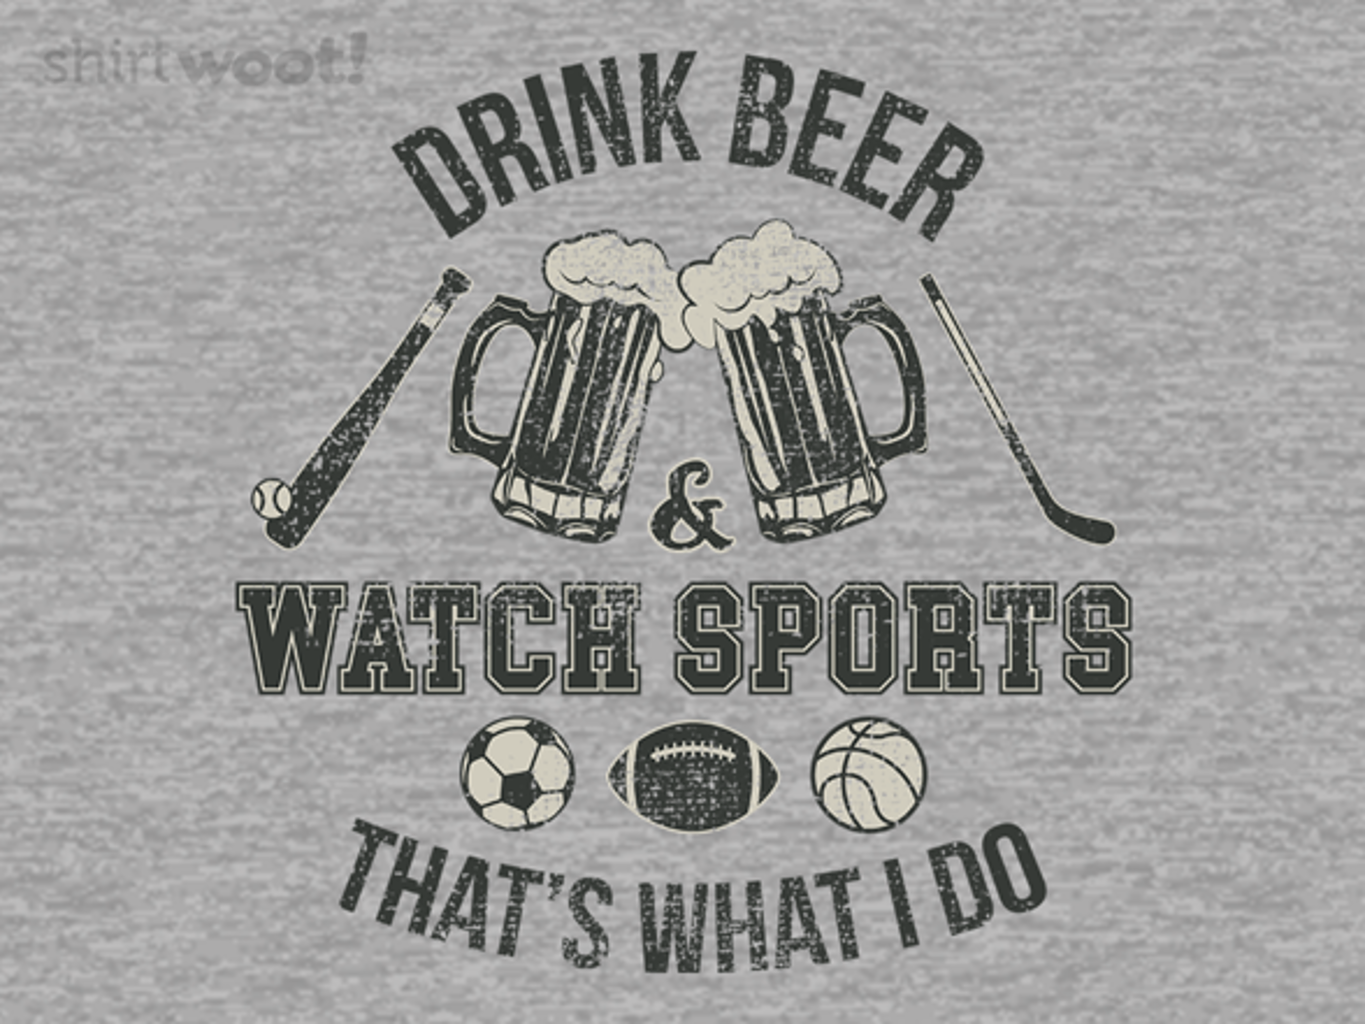 Woot!: I Drink & Watch